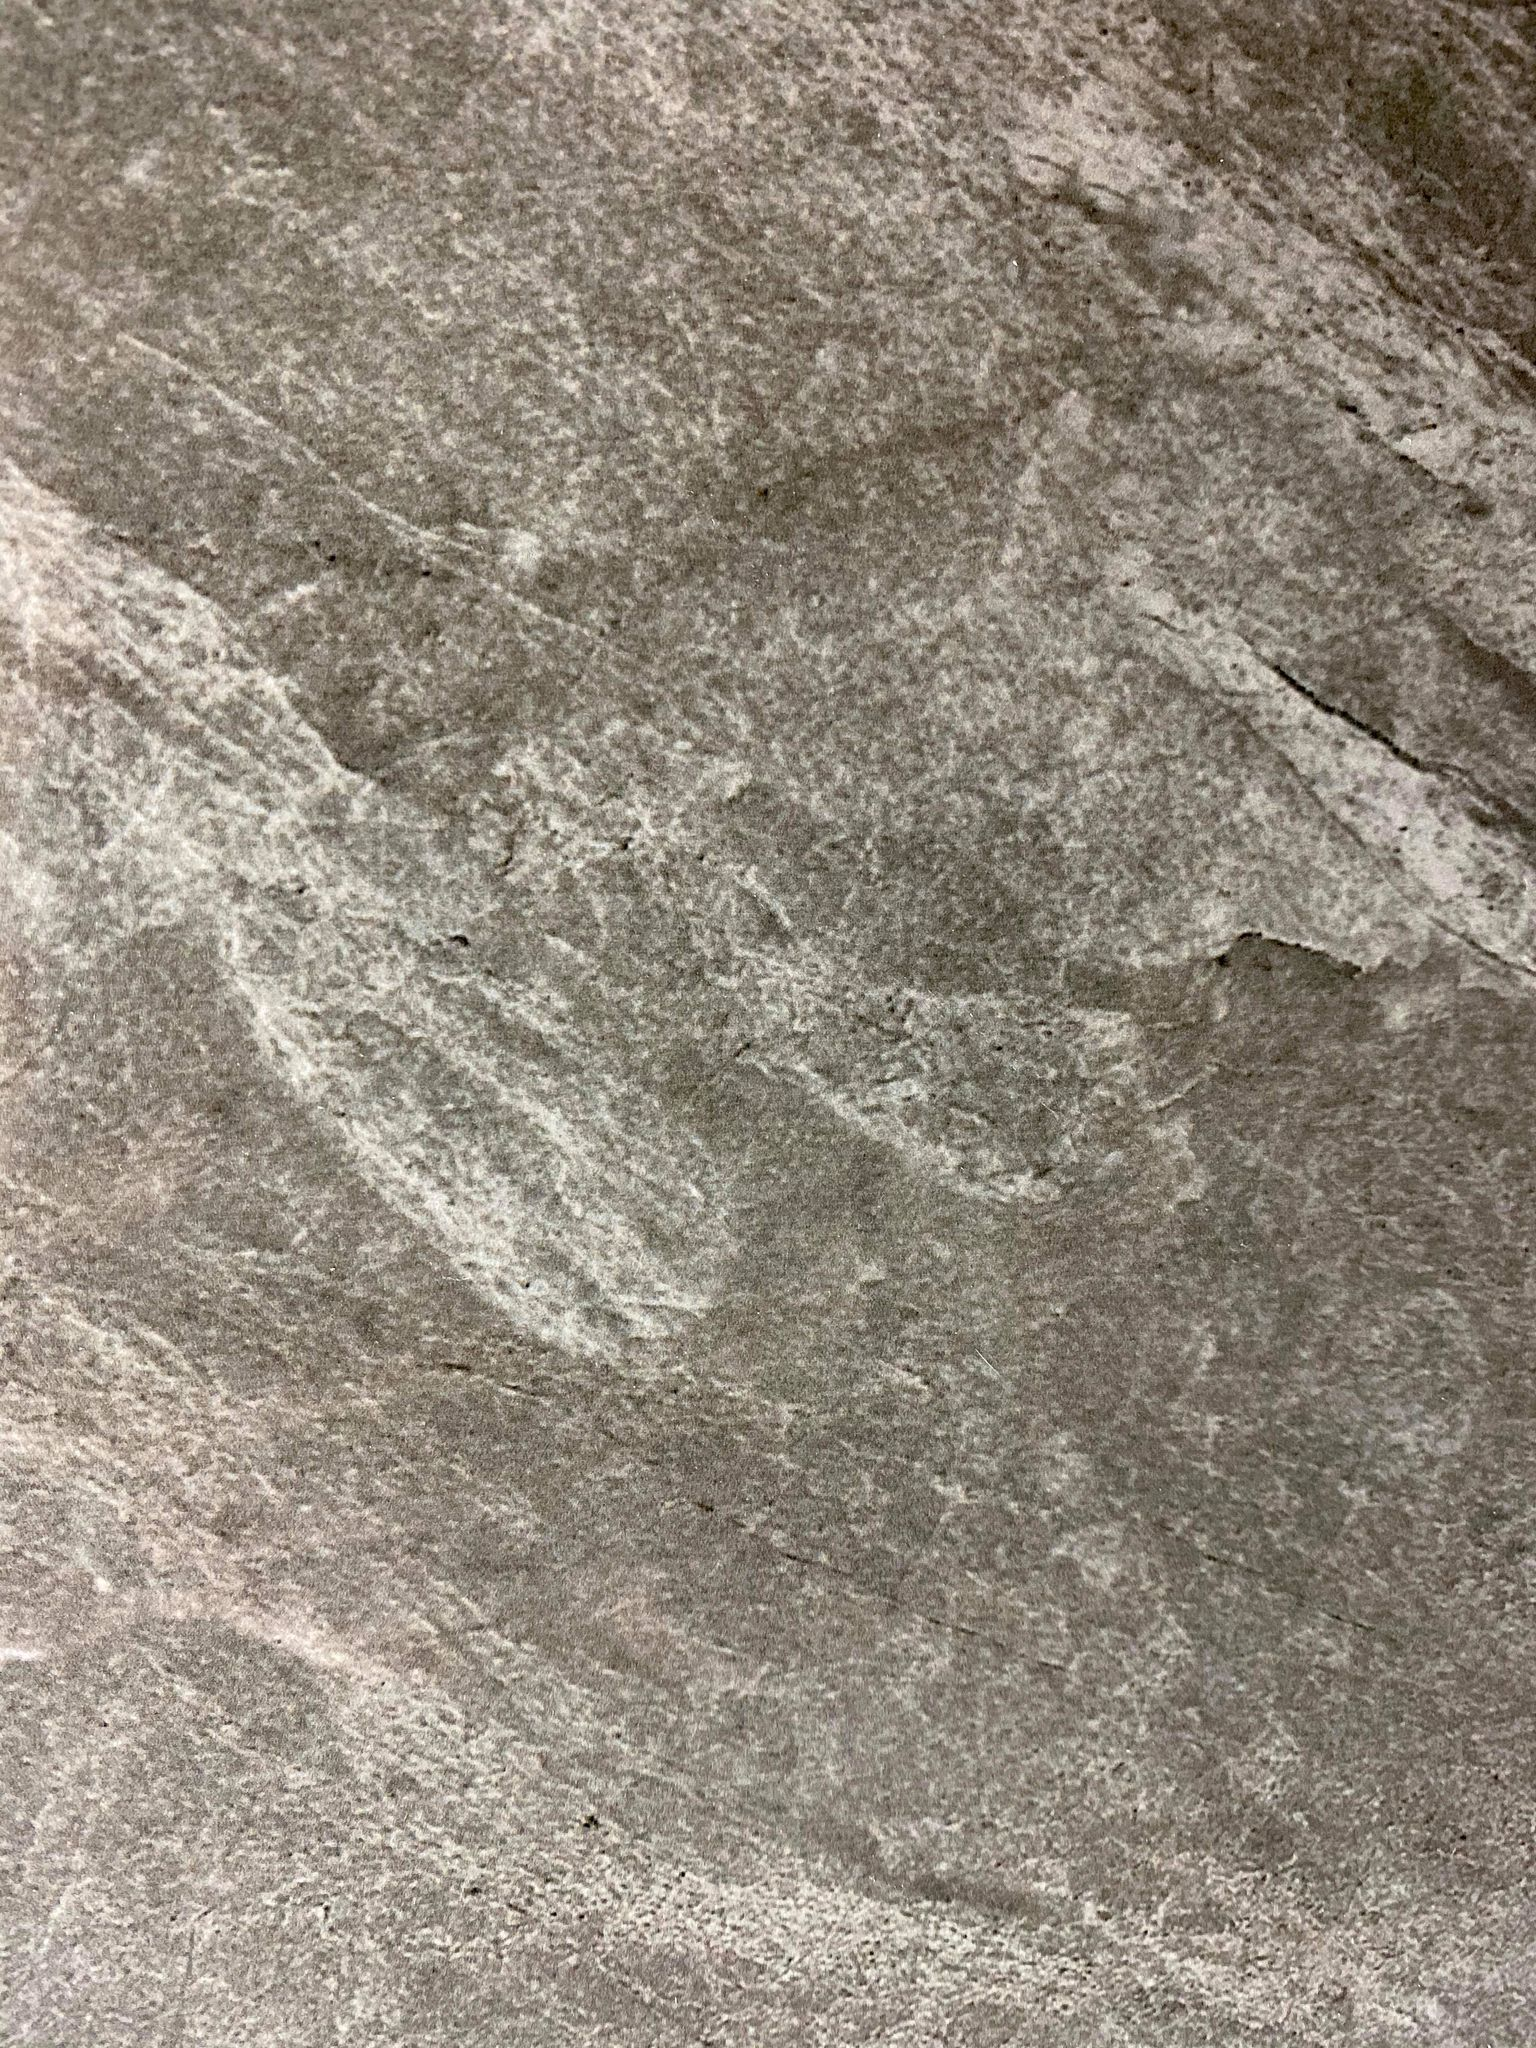 Porcelain tile || 800 x 800 x 10.5 mm, TT87A90